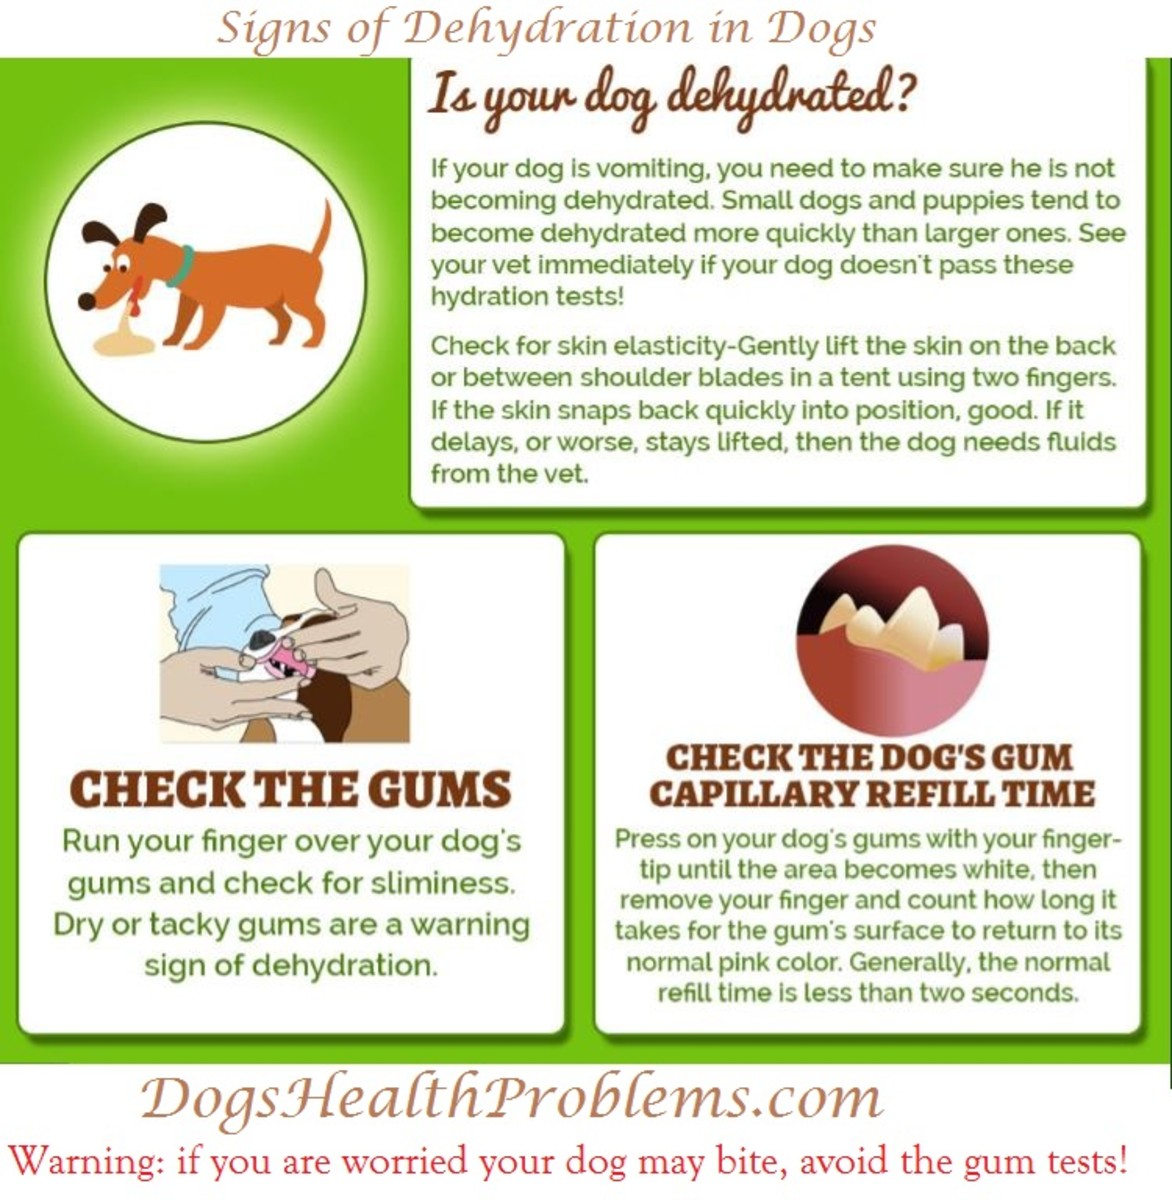 ... he can become dehydrated quite quickly. There are several causes of vomiting in dogs that require treatment in order to make the vomiting stop.  sc 1 st  Dogs Health Problems & Recognizing Dehydration in a Vomiting Dog - Dogs Health Problems